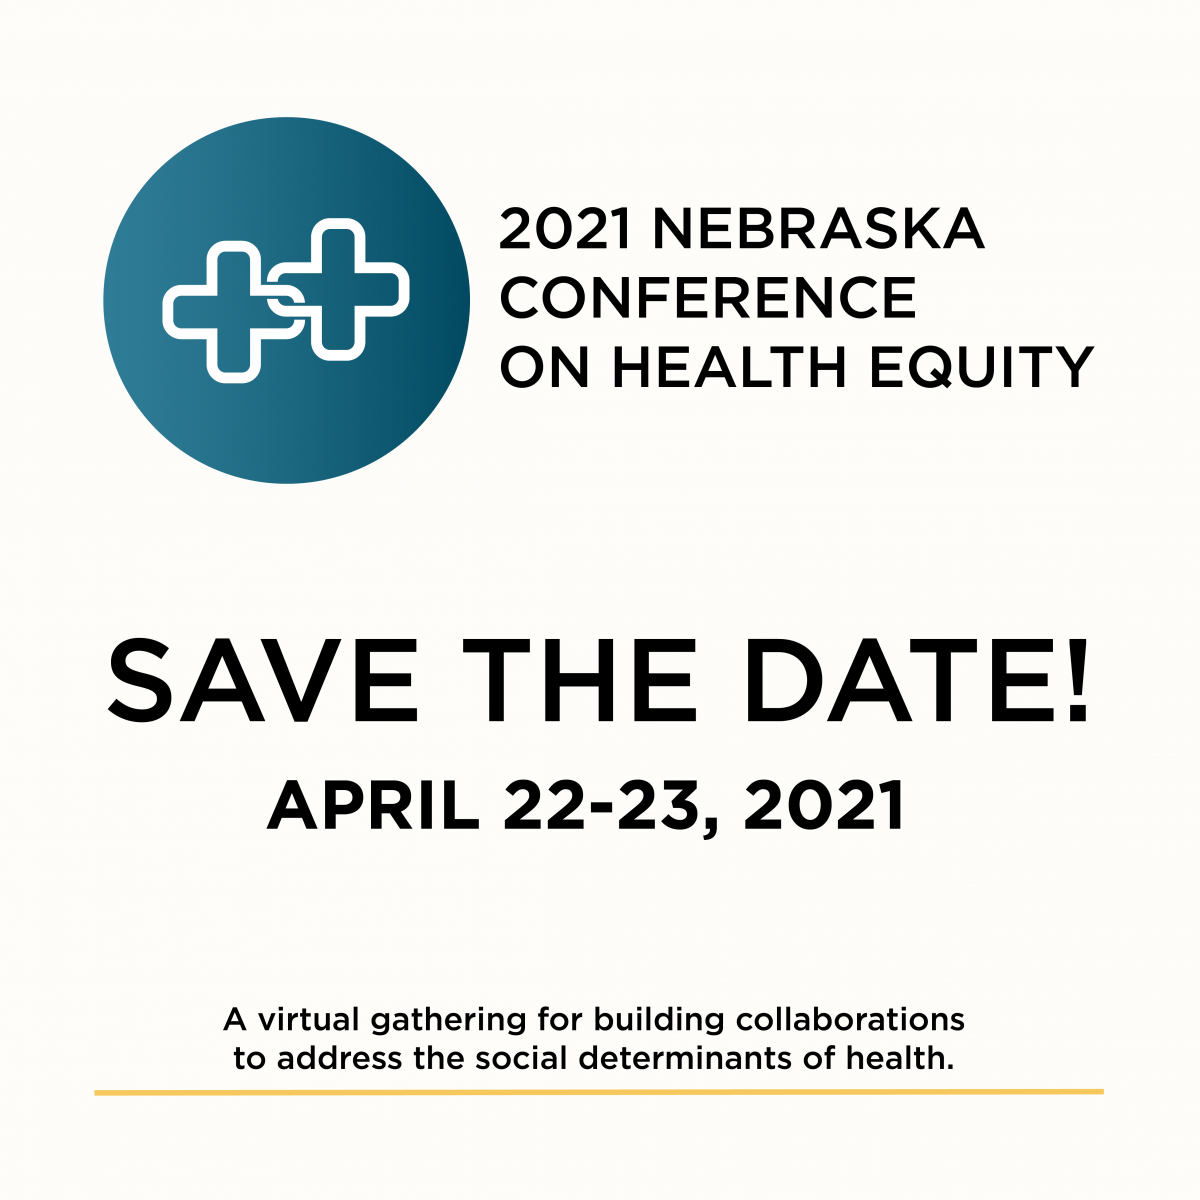 Conference Save the Date